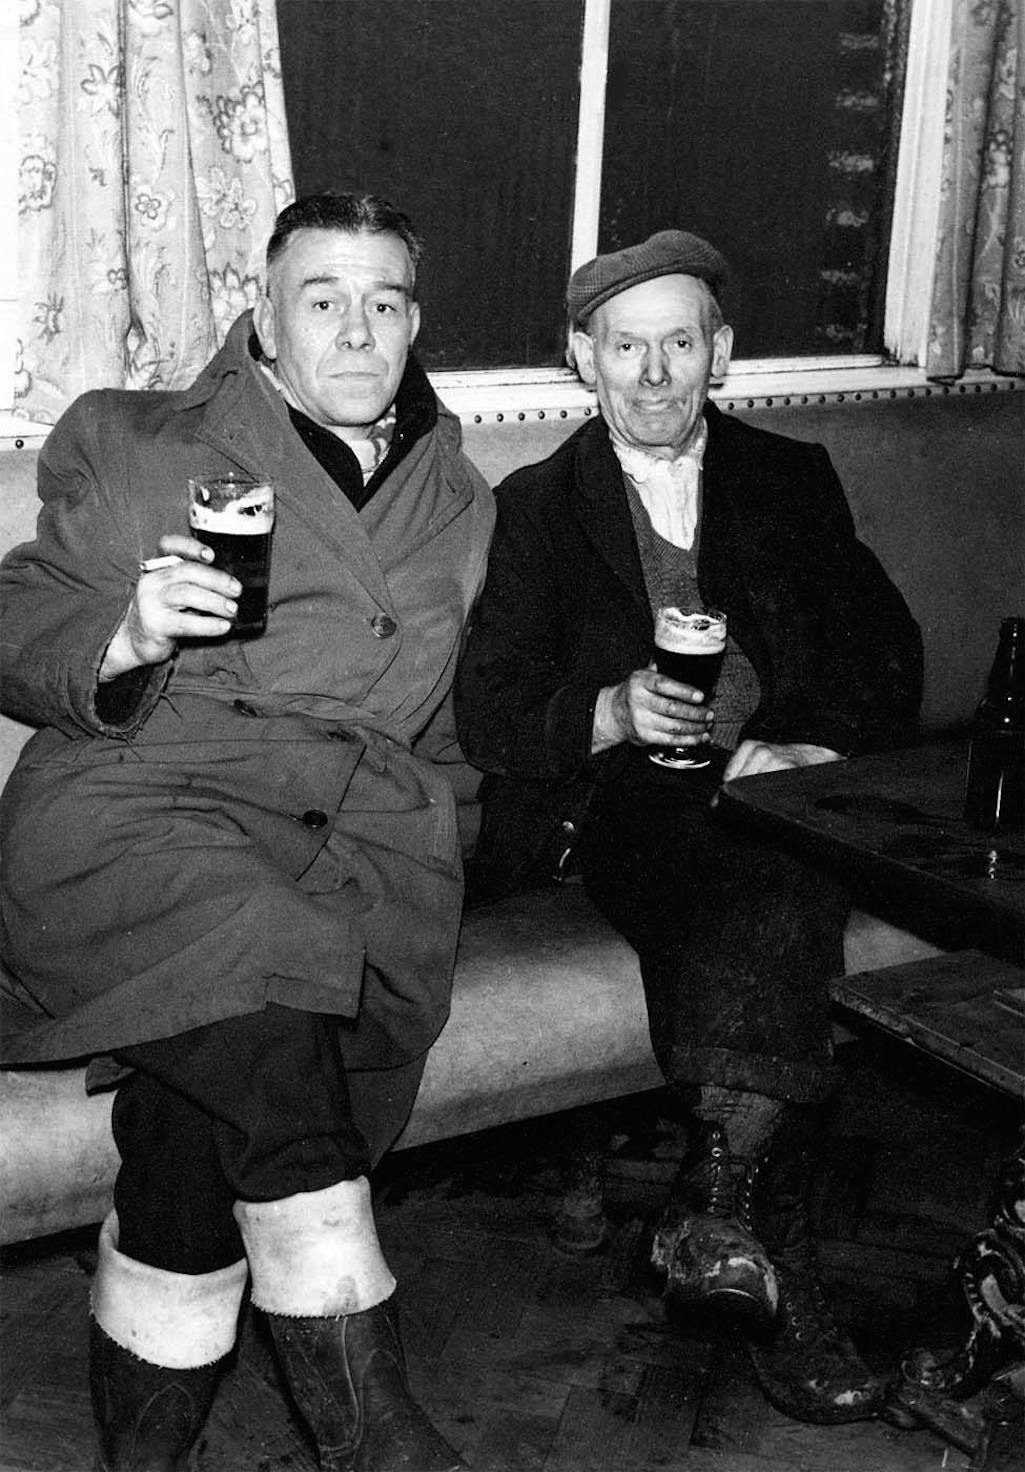 Tom Austin and James Bud Lamb enjoying a pint at the Bull & Dog, Sutton, St.Helens during the 1960s